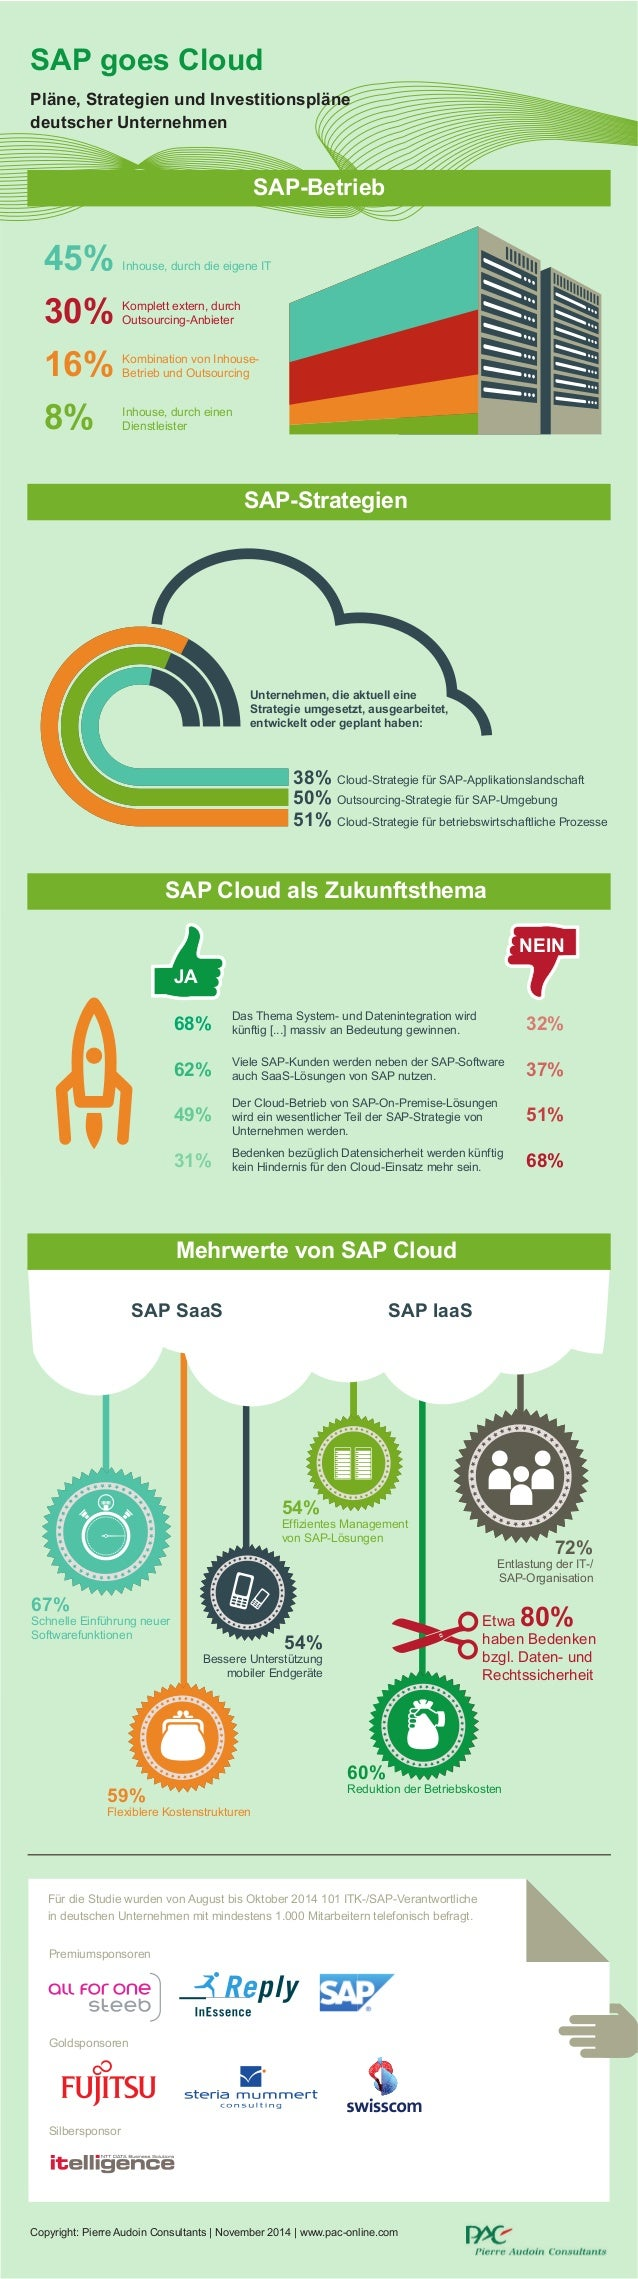 SAP goes Cloud Pläne, Strategien und Investitionspläne deutscher Unternehmen SAP-Betrieb 45% Inhouse, durch die eigene IT ...